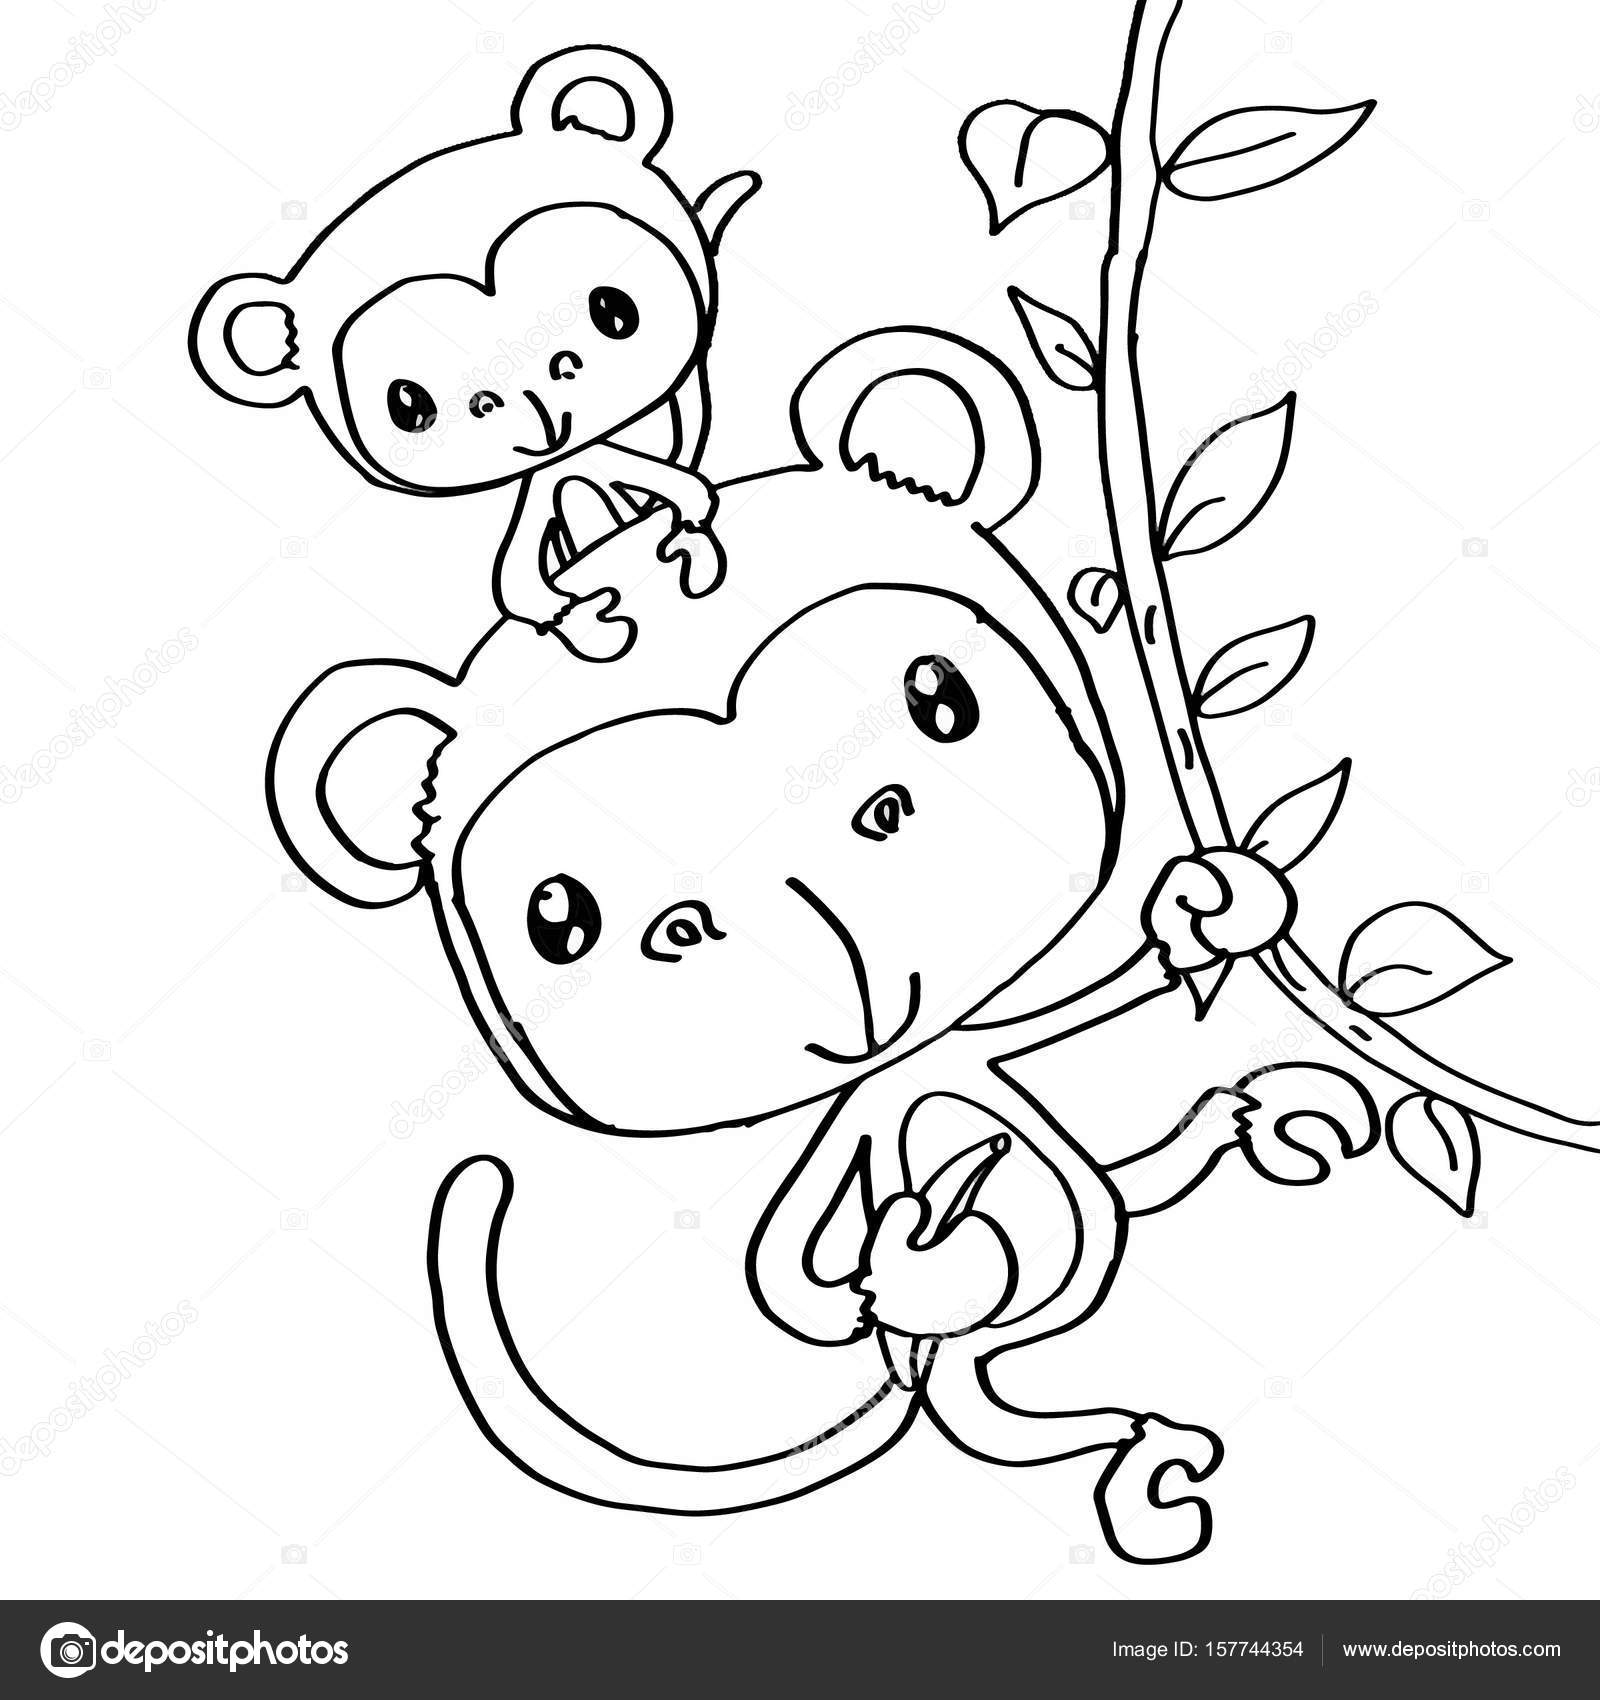 Https Cz Depositphotos Com 157744354 Stock Photo Mother Monkey And Baby Coloring Html